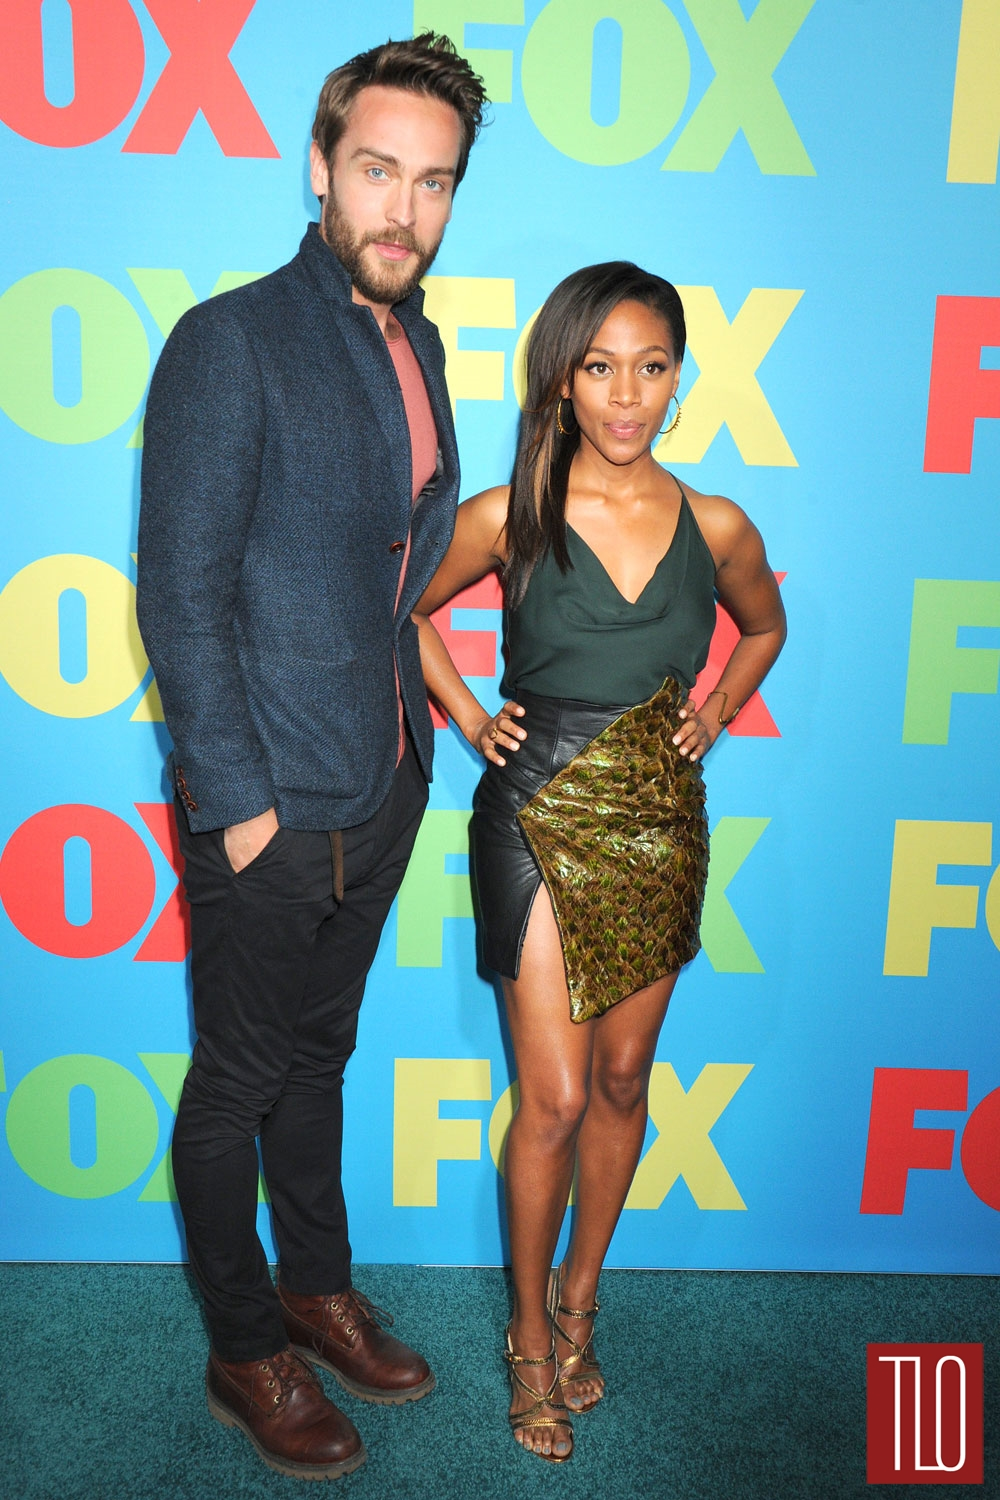 Sleepy-Hollow-Tom-Mison-Nicole-Beharie-2014-Fox-Upfront-Tom-Lorenzo-Site-TLO (1)